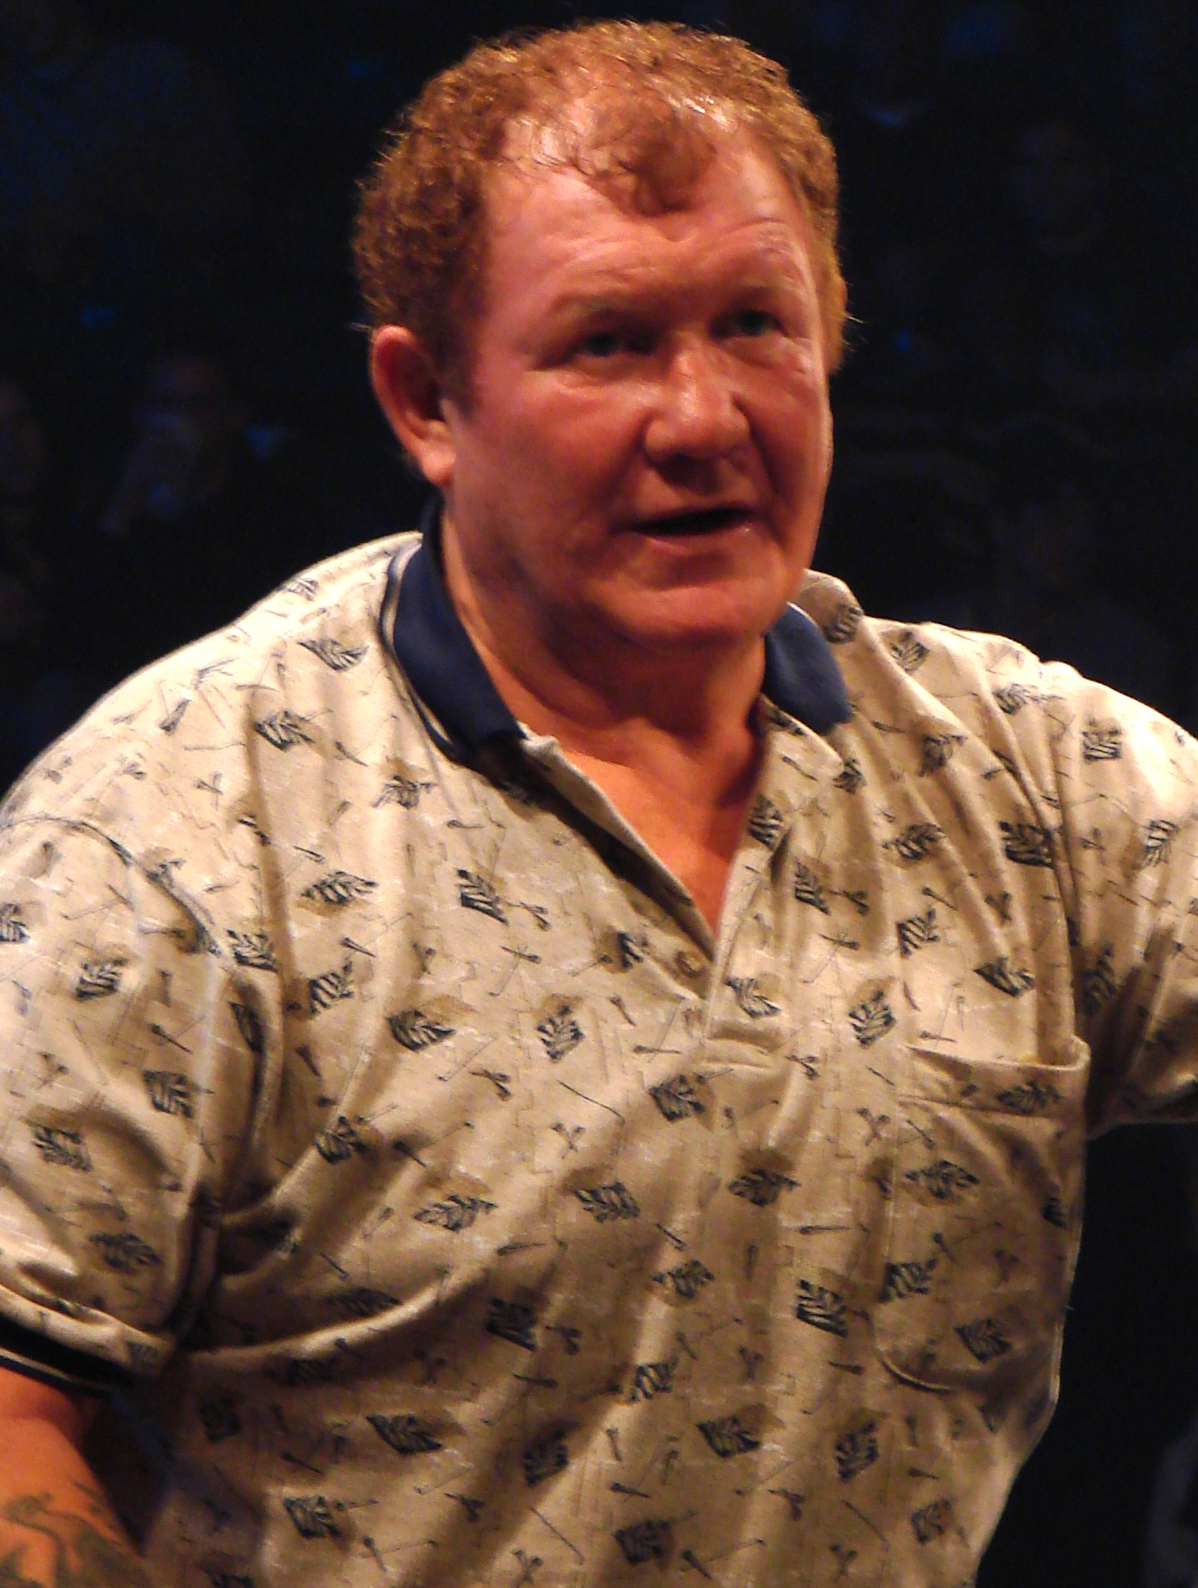 The 75-year old son of father (?) and mother(?) Harley Race in 2018 photo. Harley Race earned a  million dollar salary - leaving the net worth at 12 million in 2018